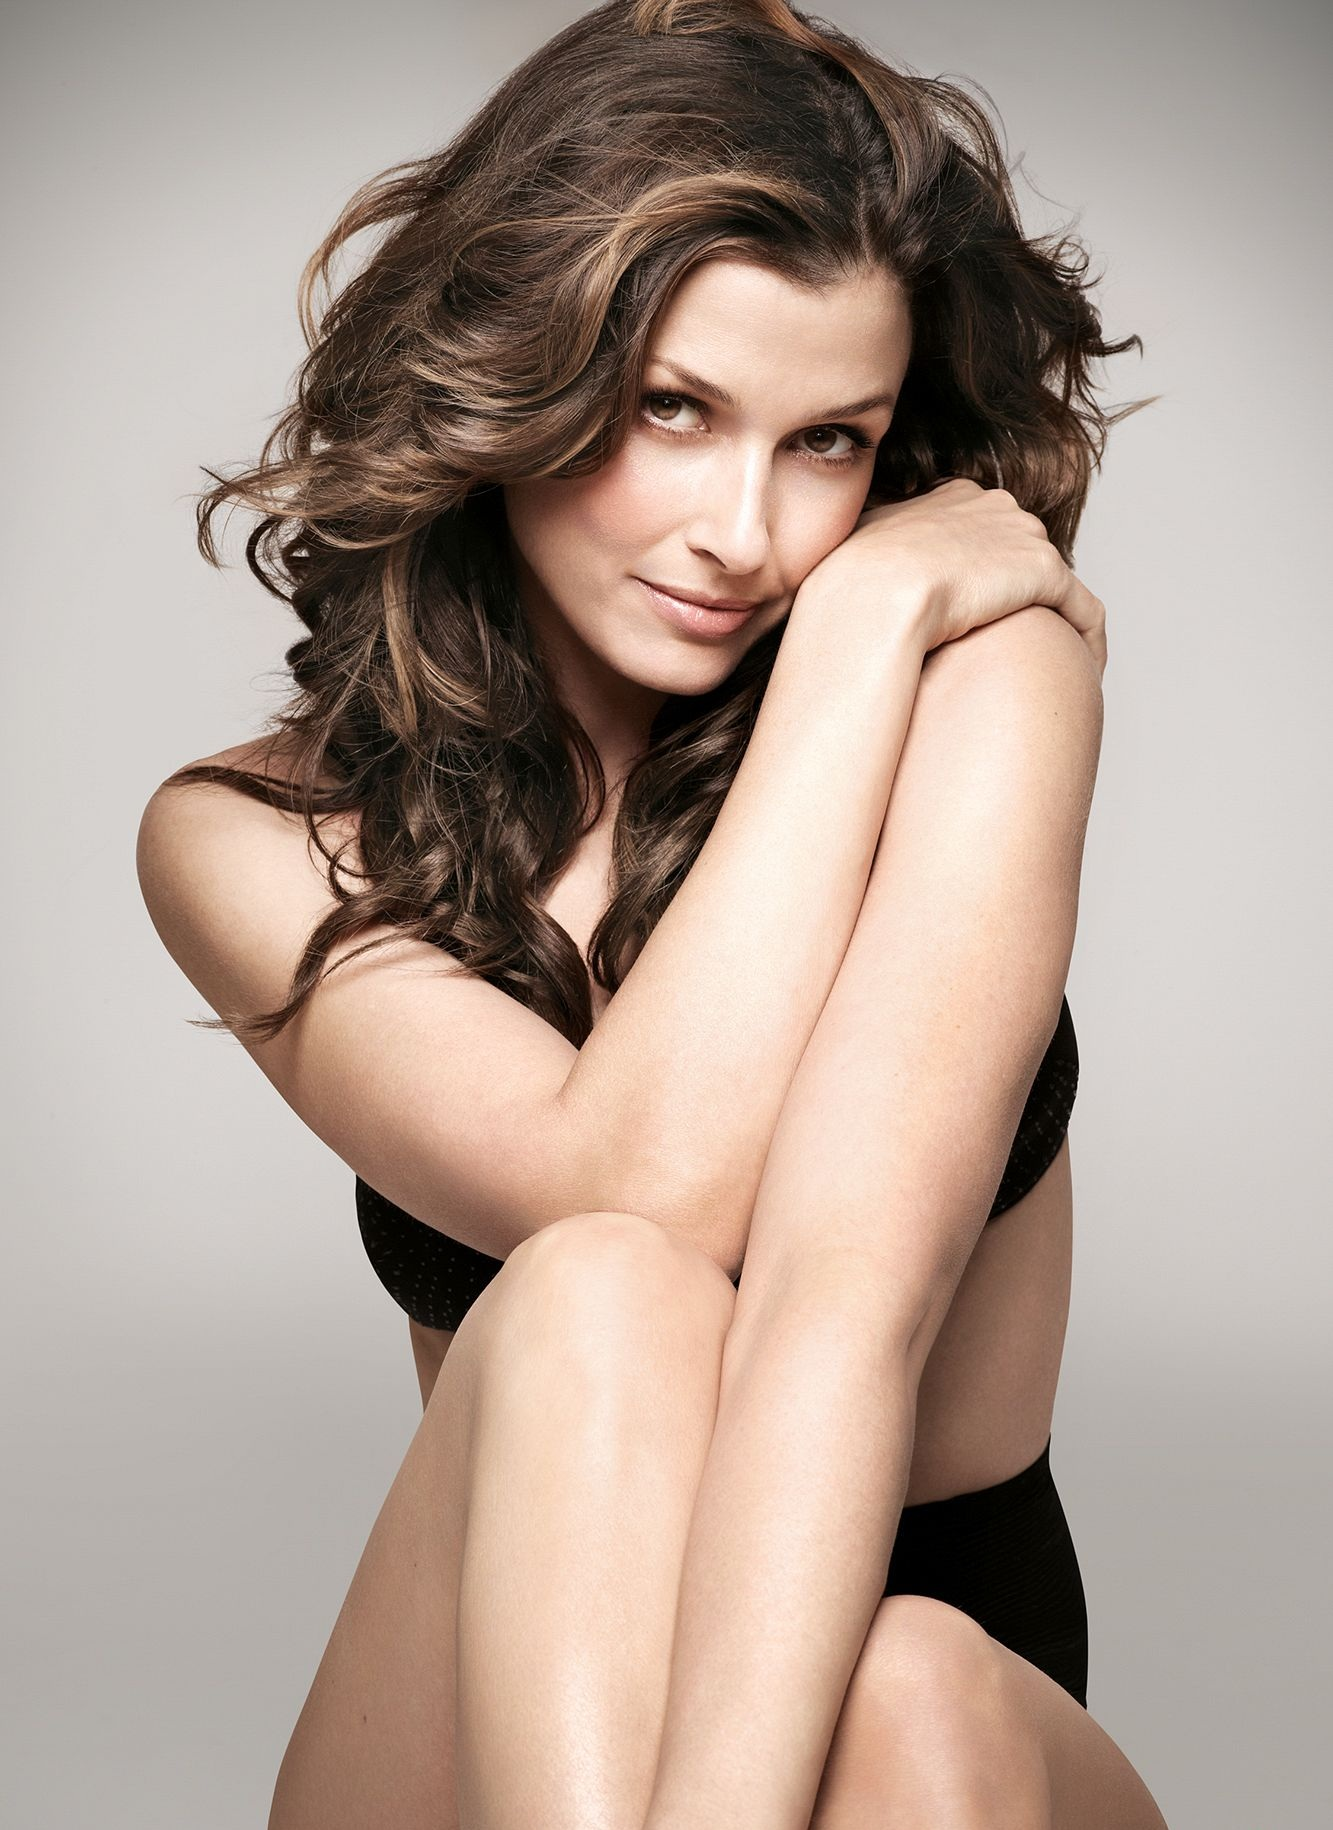 Hot Bridget Moynahan Sexy Bikini Pictures Which Will Get You Sweating